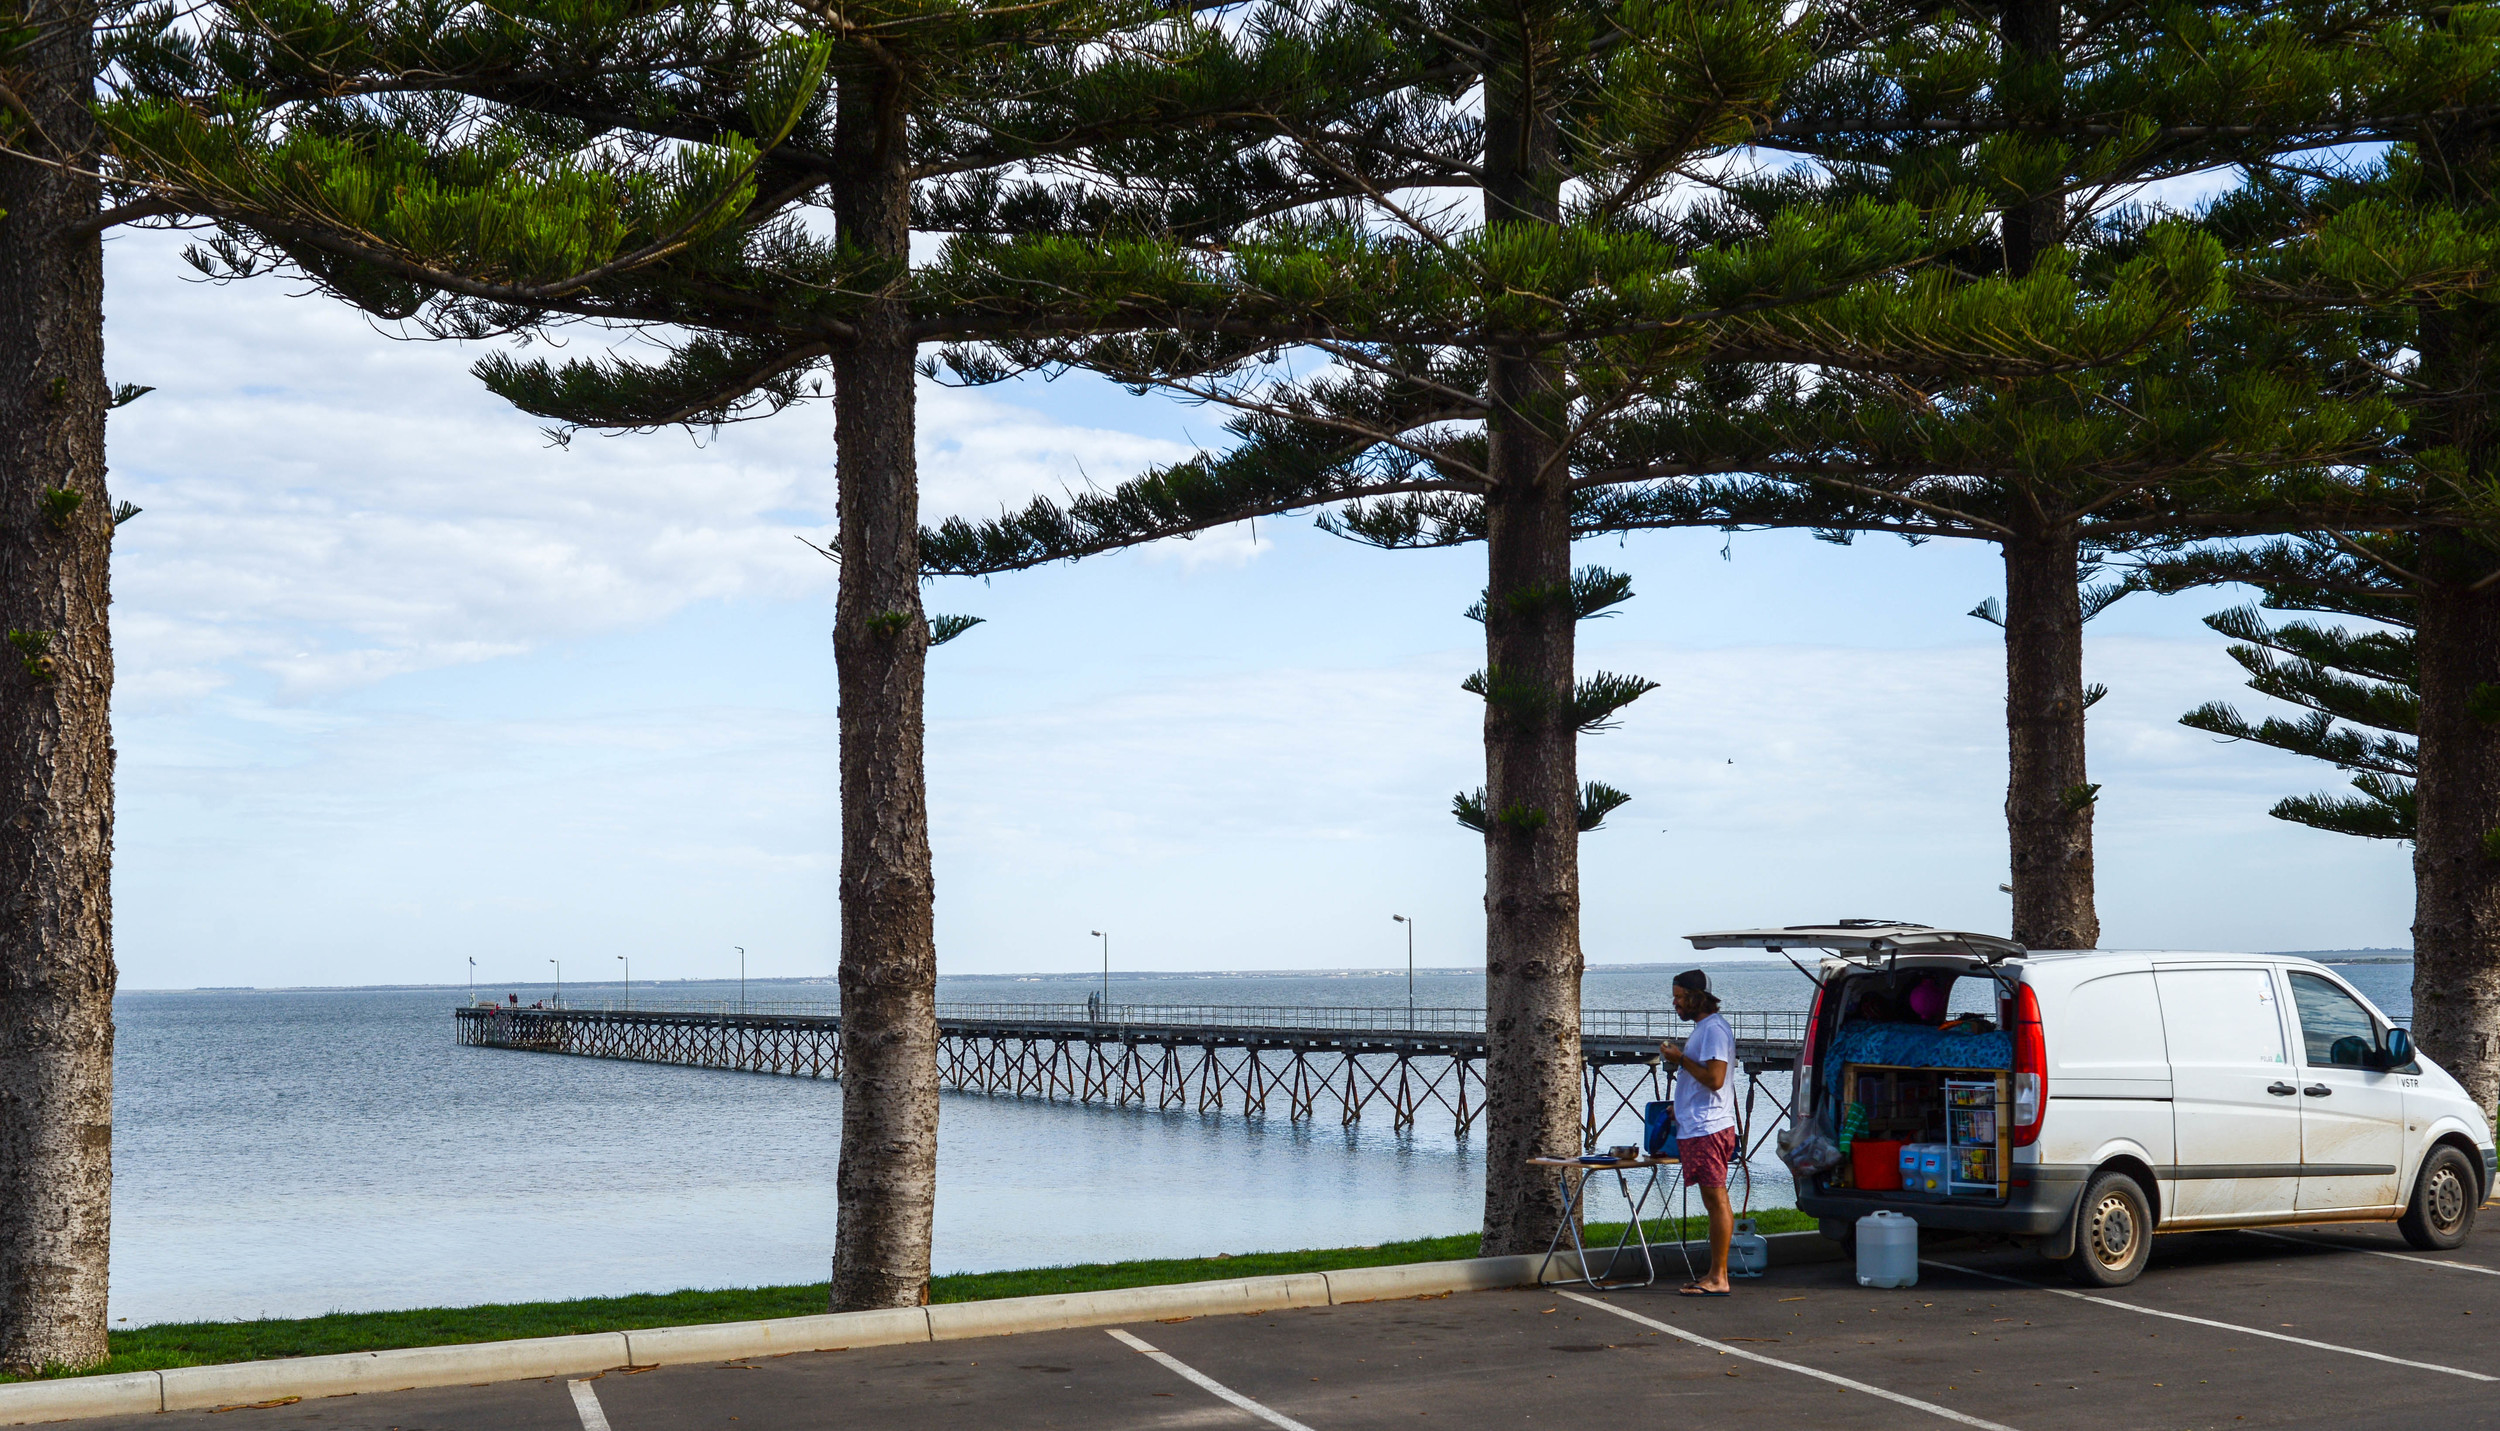 Breakfast at the pier in Ceduna, South Australia.